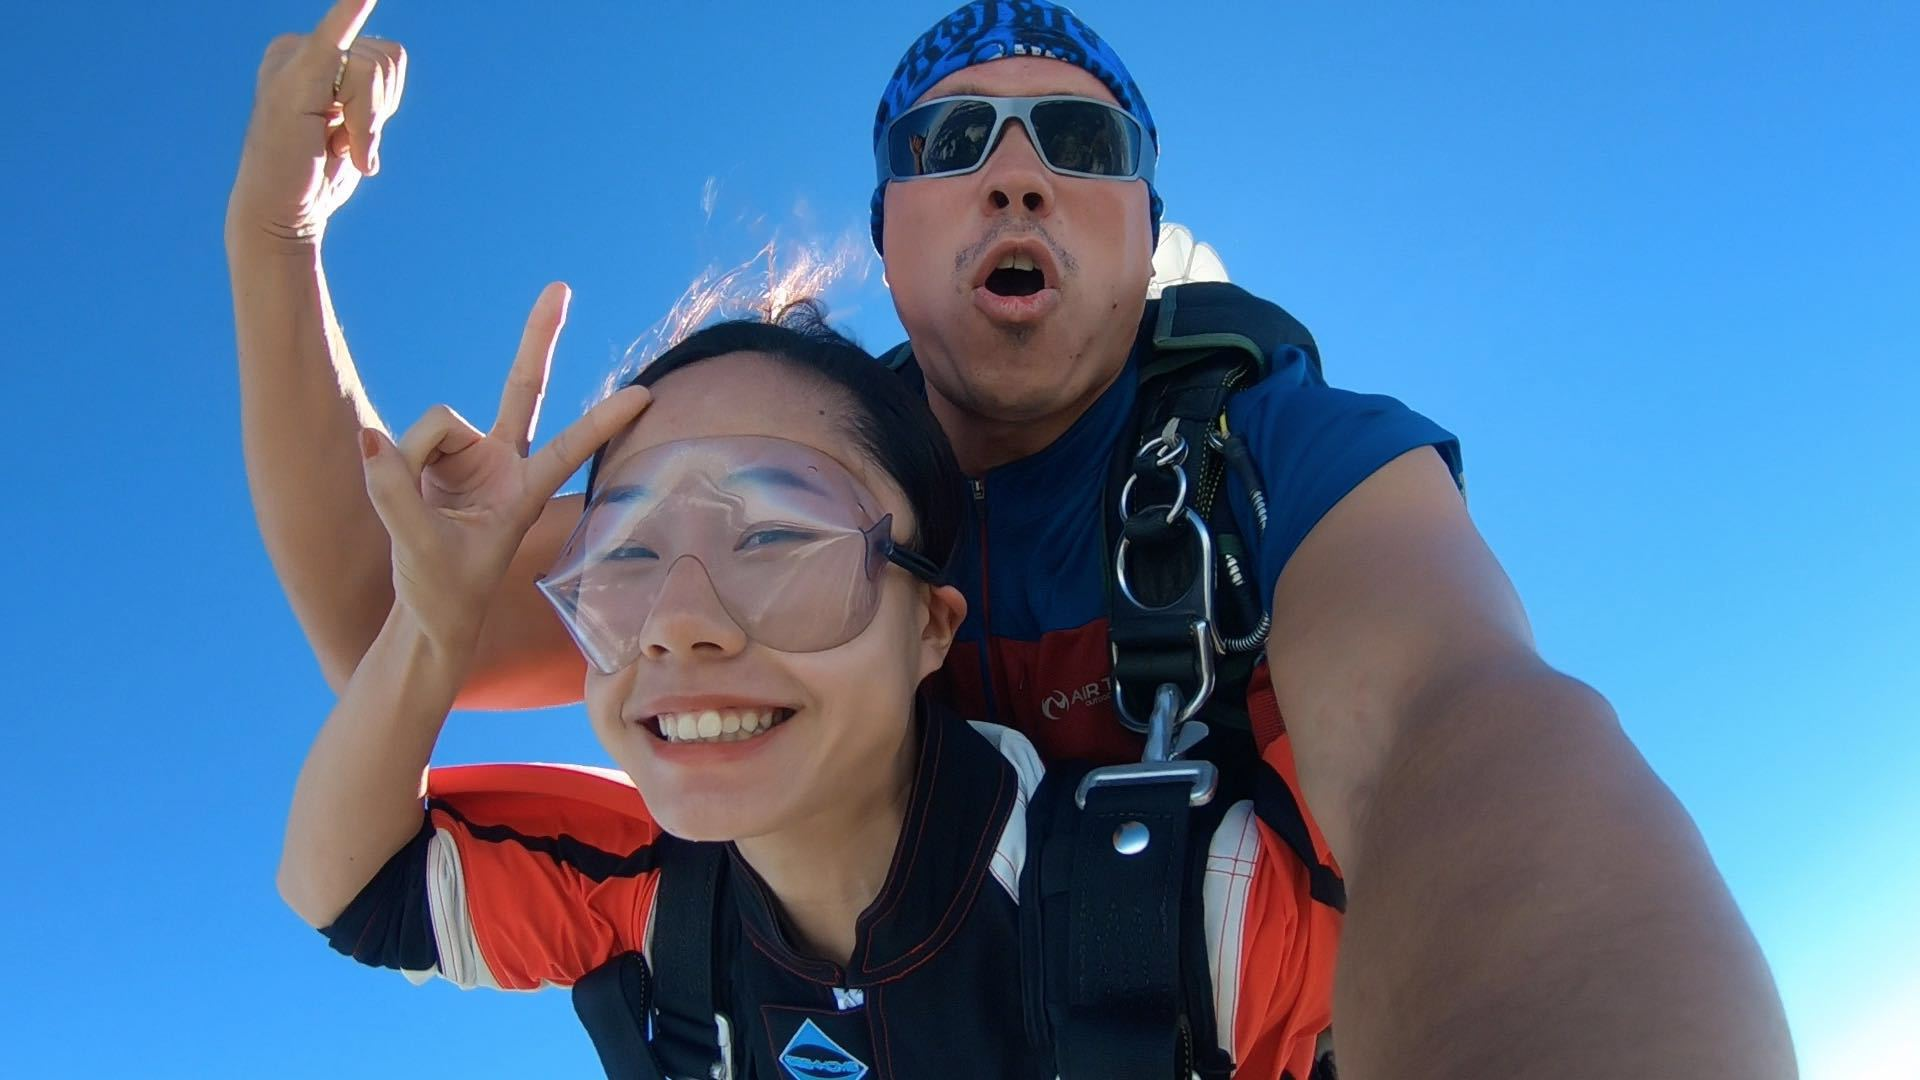 Skydive for 20th birthday